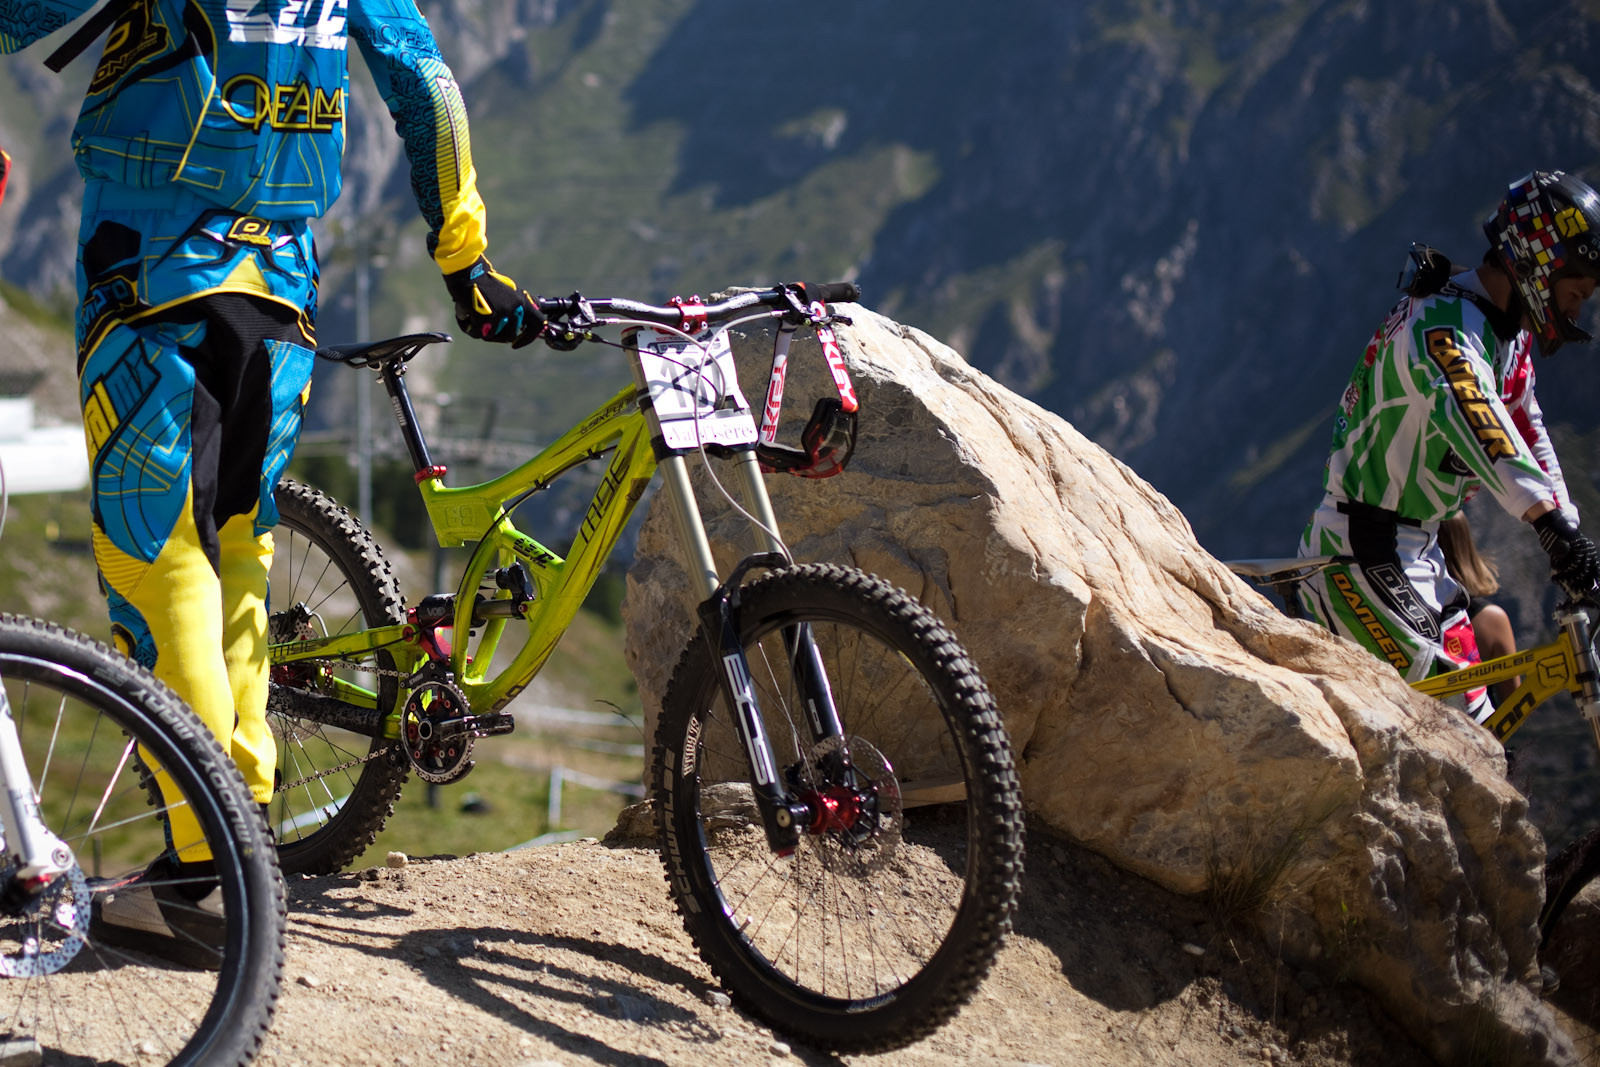 MU Bikes MDE 69 DH - European DH Bikes from Val d'Isere - Mountain Biking Pictures - Vital MTB